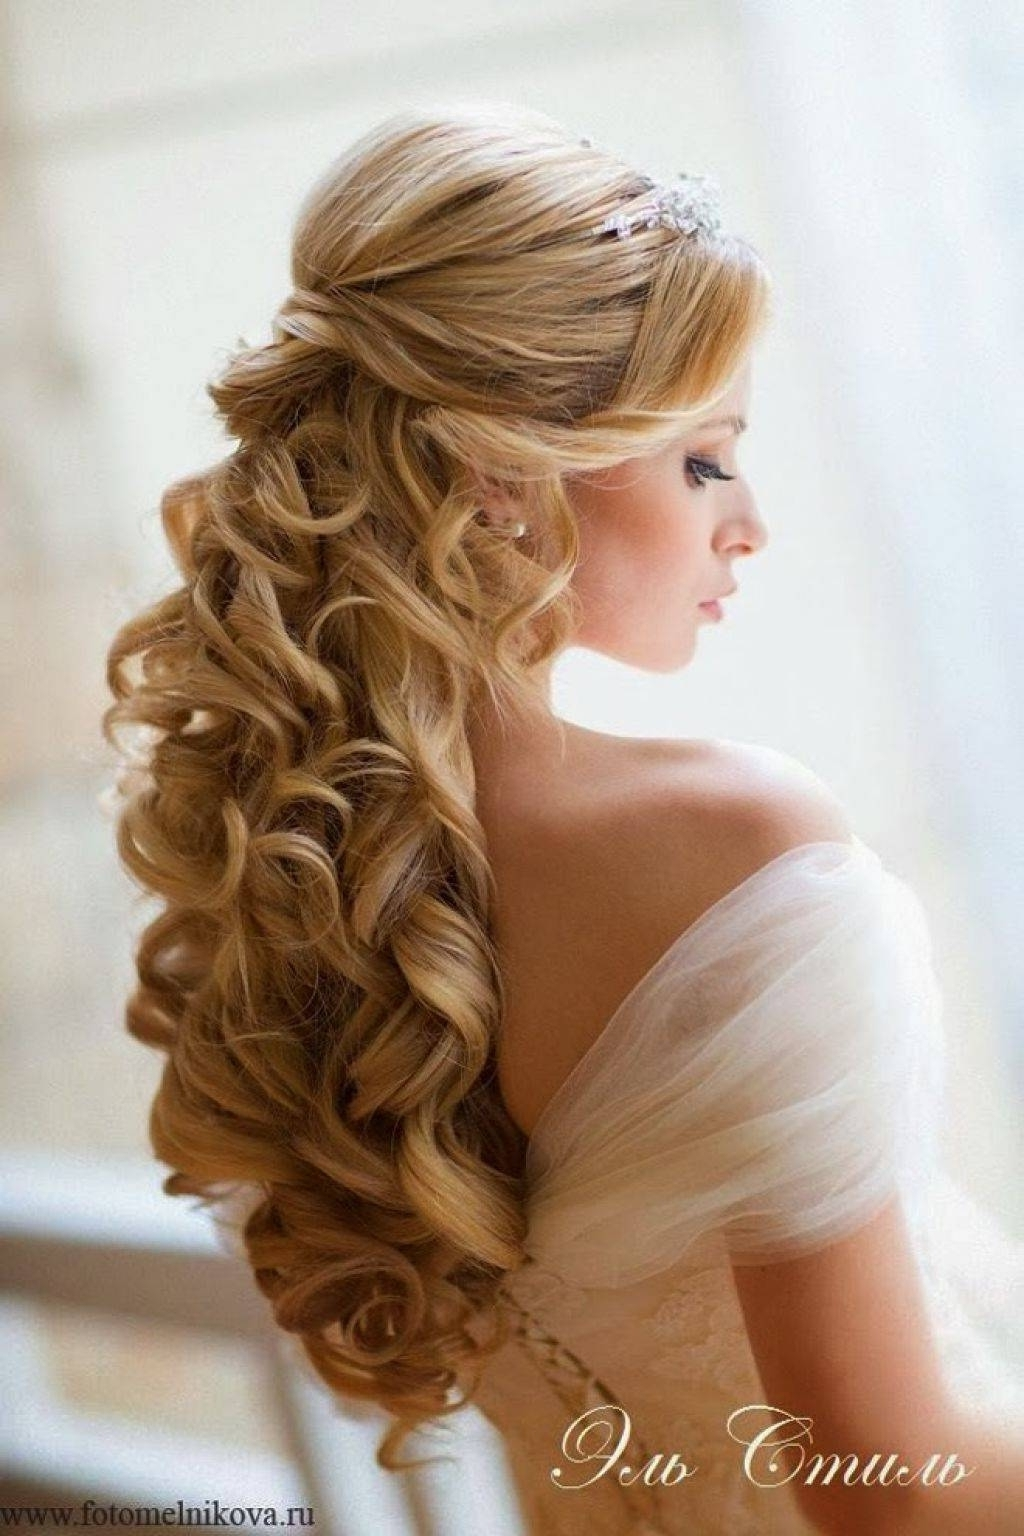 Up Style Hairstyles For Long Hair Wedding Hair Half Up Half Down Within Trendy Half Up Half Down With Fringe Wedding Hairstyles (View 13 of 15)